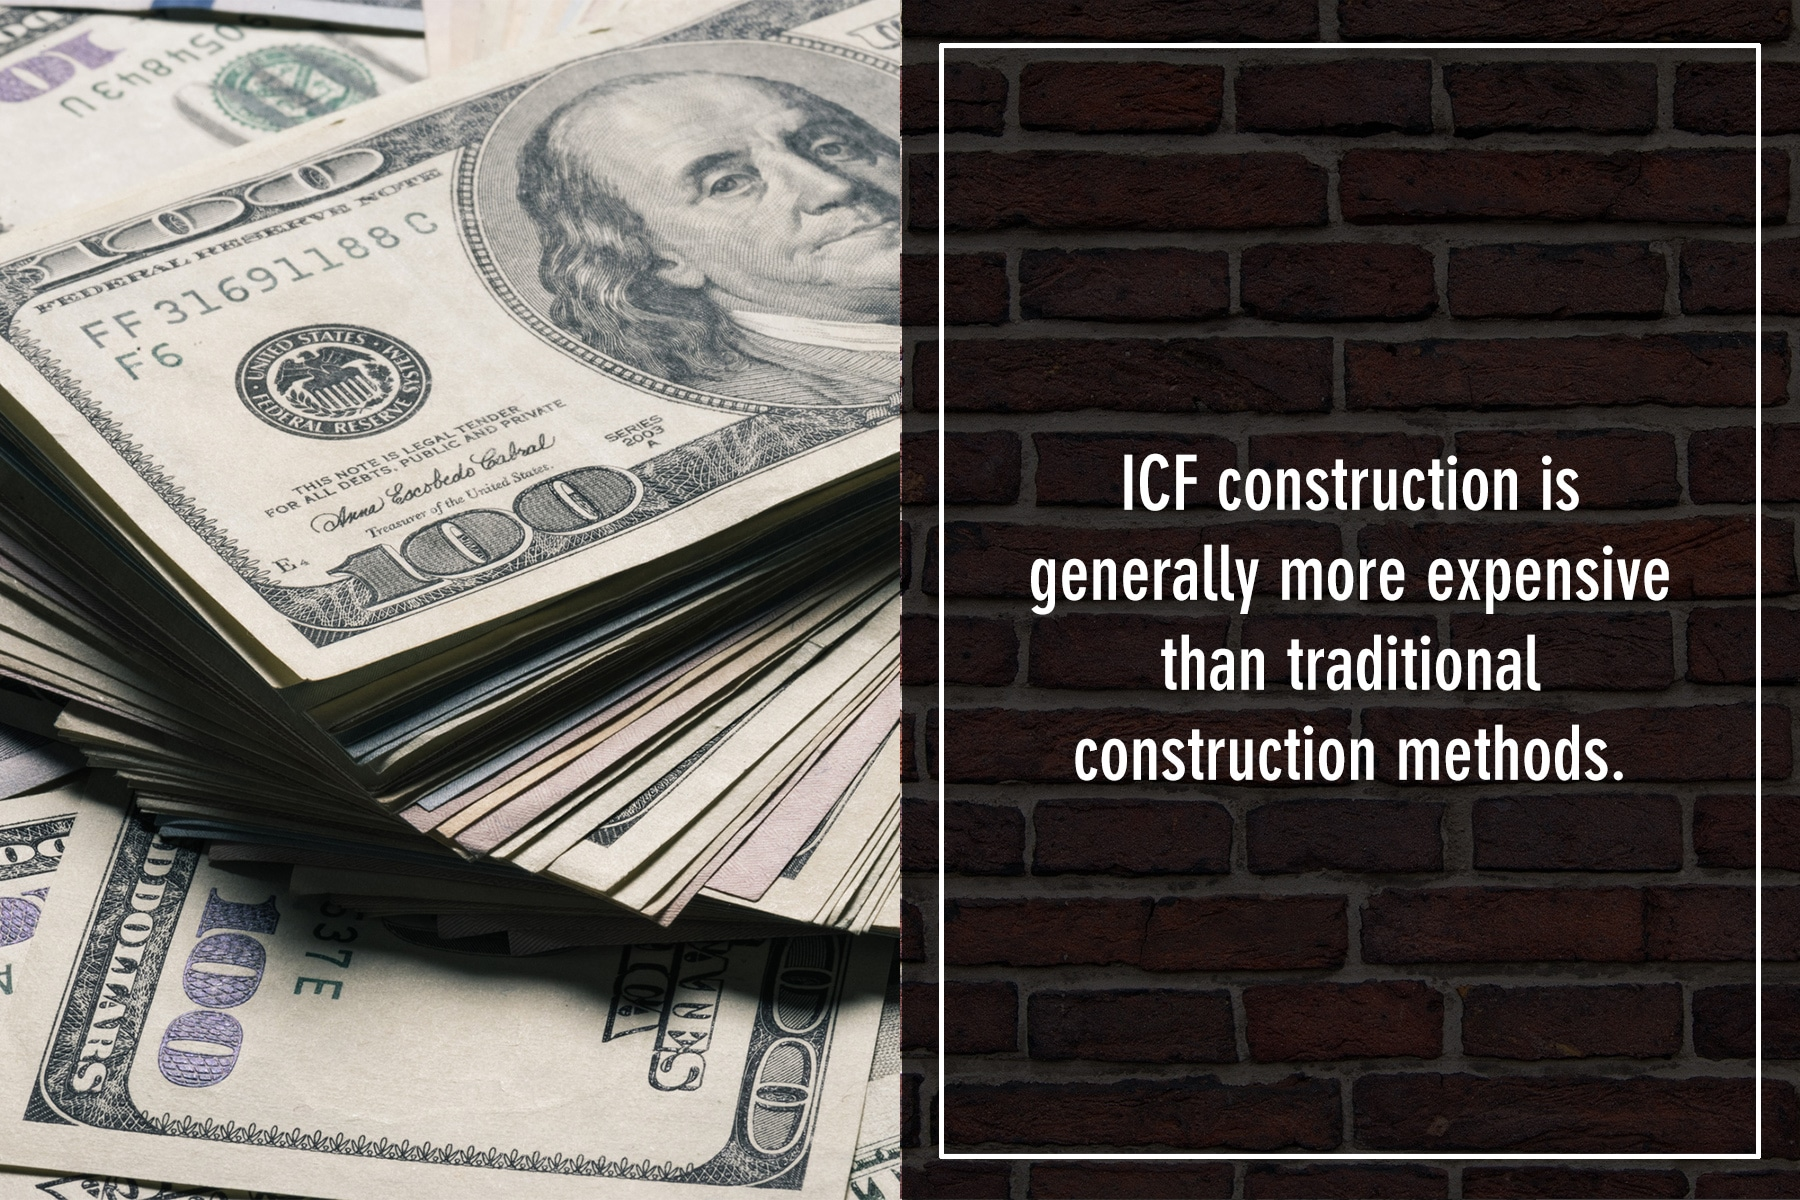 ICF construction is more expensive than other traditional methods